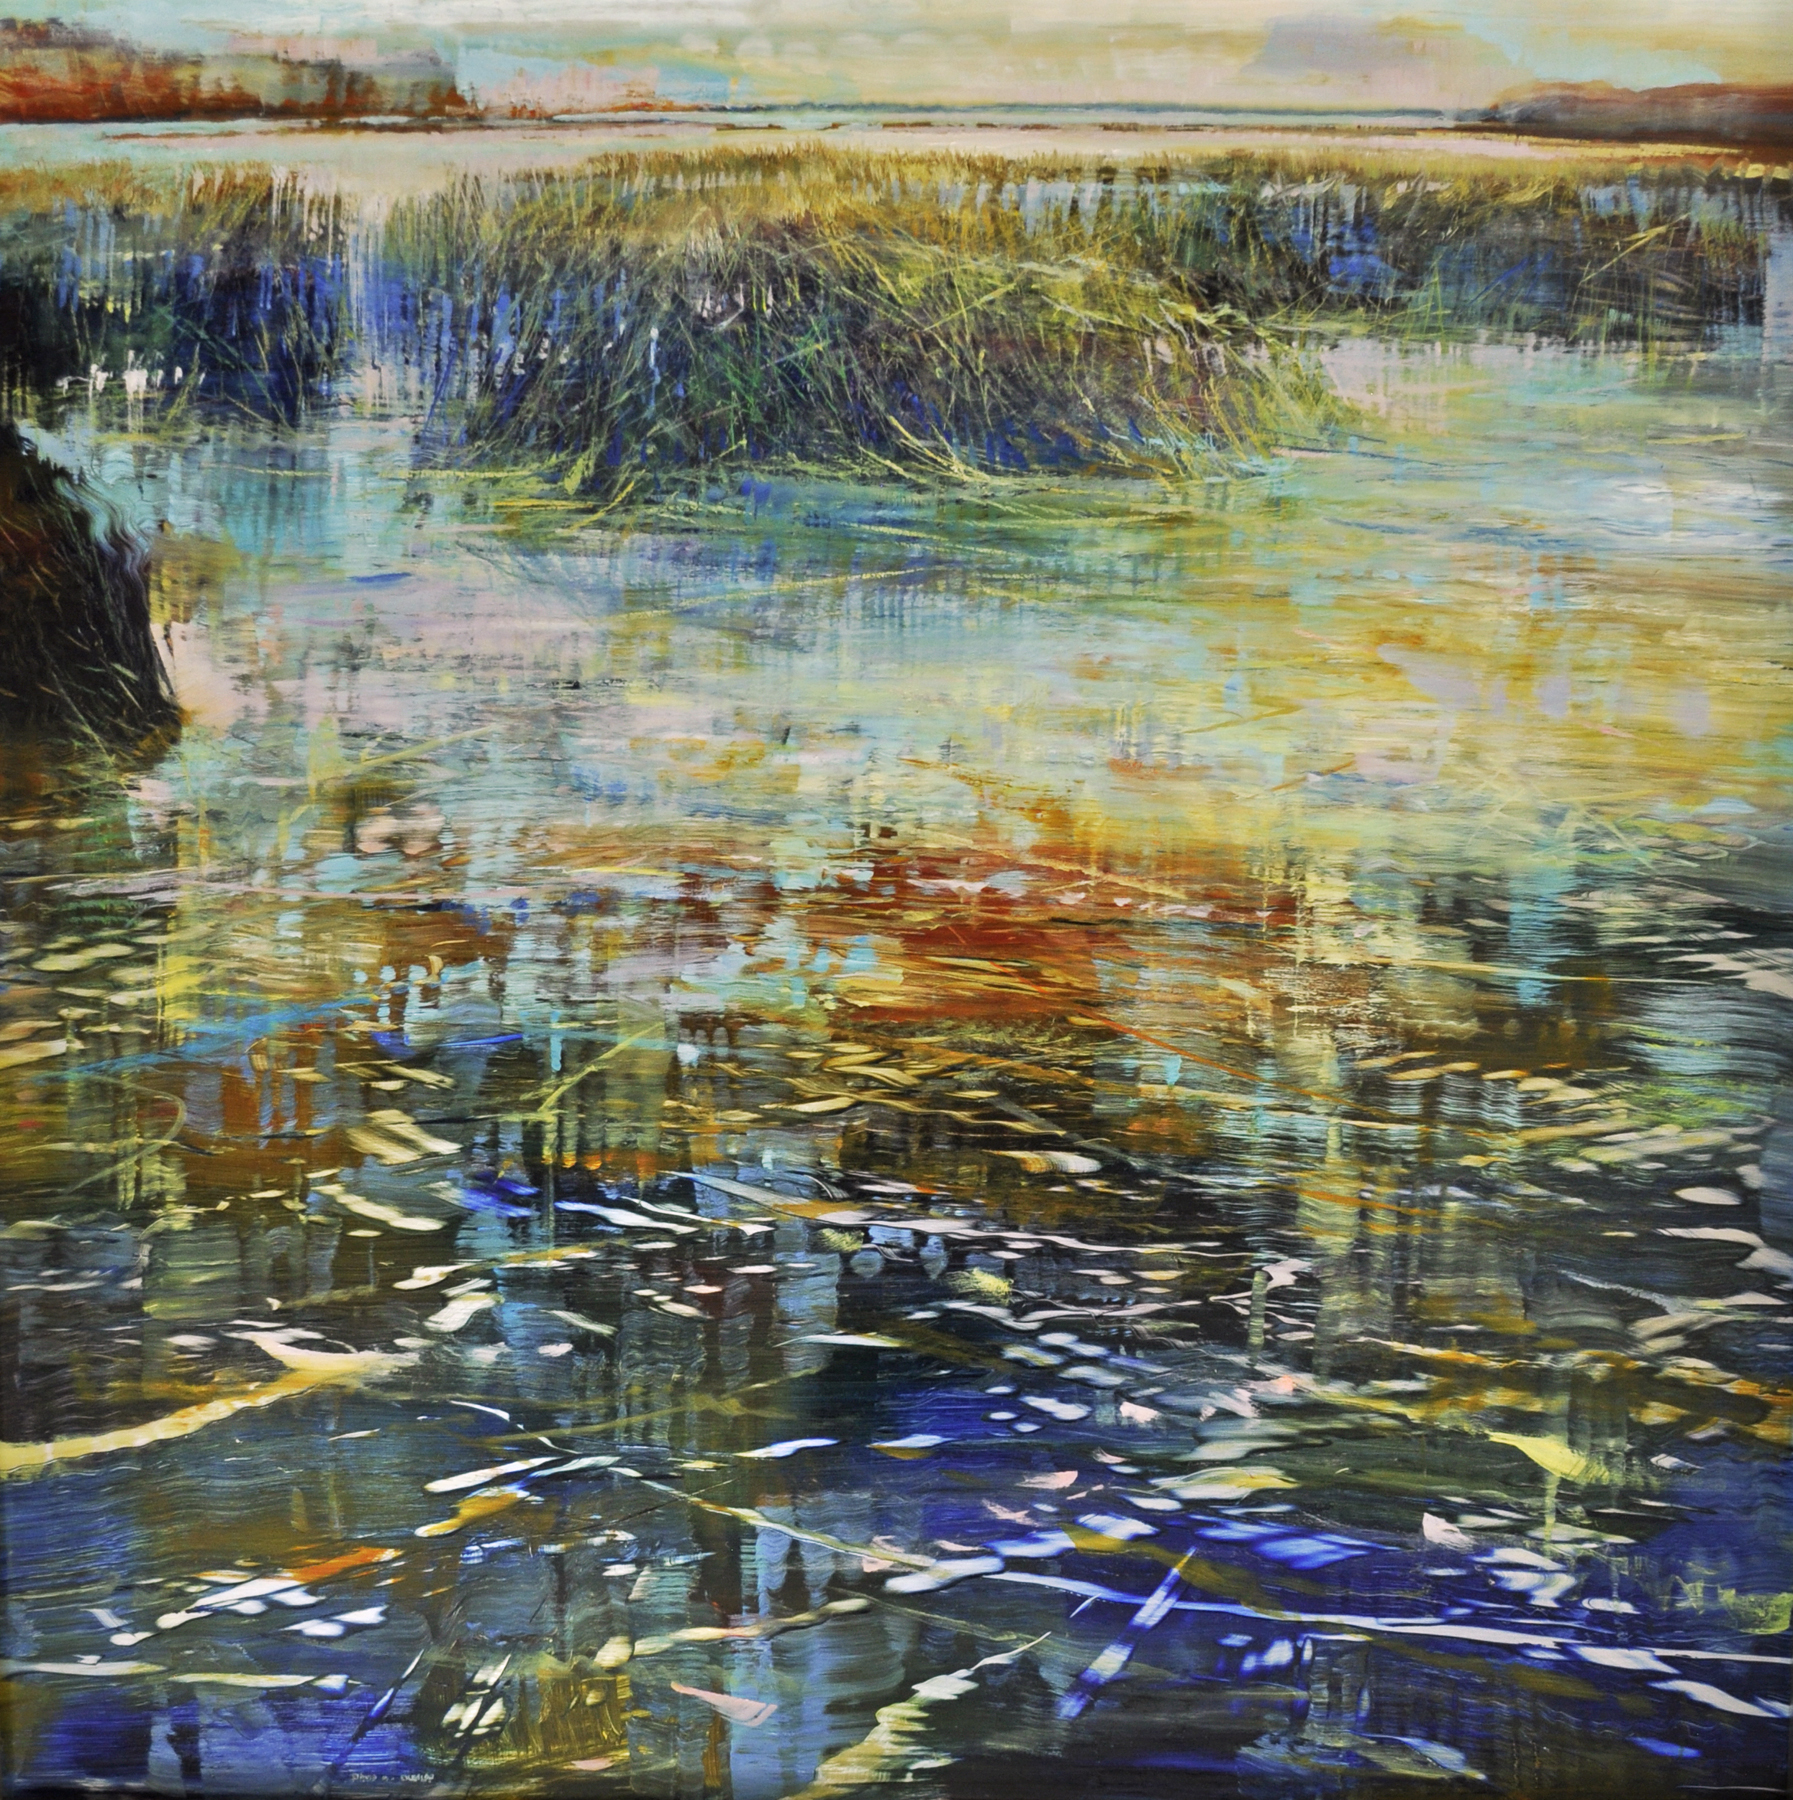 Shoreline-Tods point_tidewater_oil on enameled laminated aluminum_24x24_3500.JPG